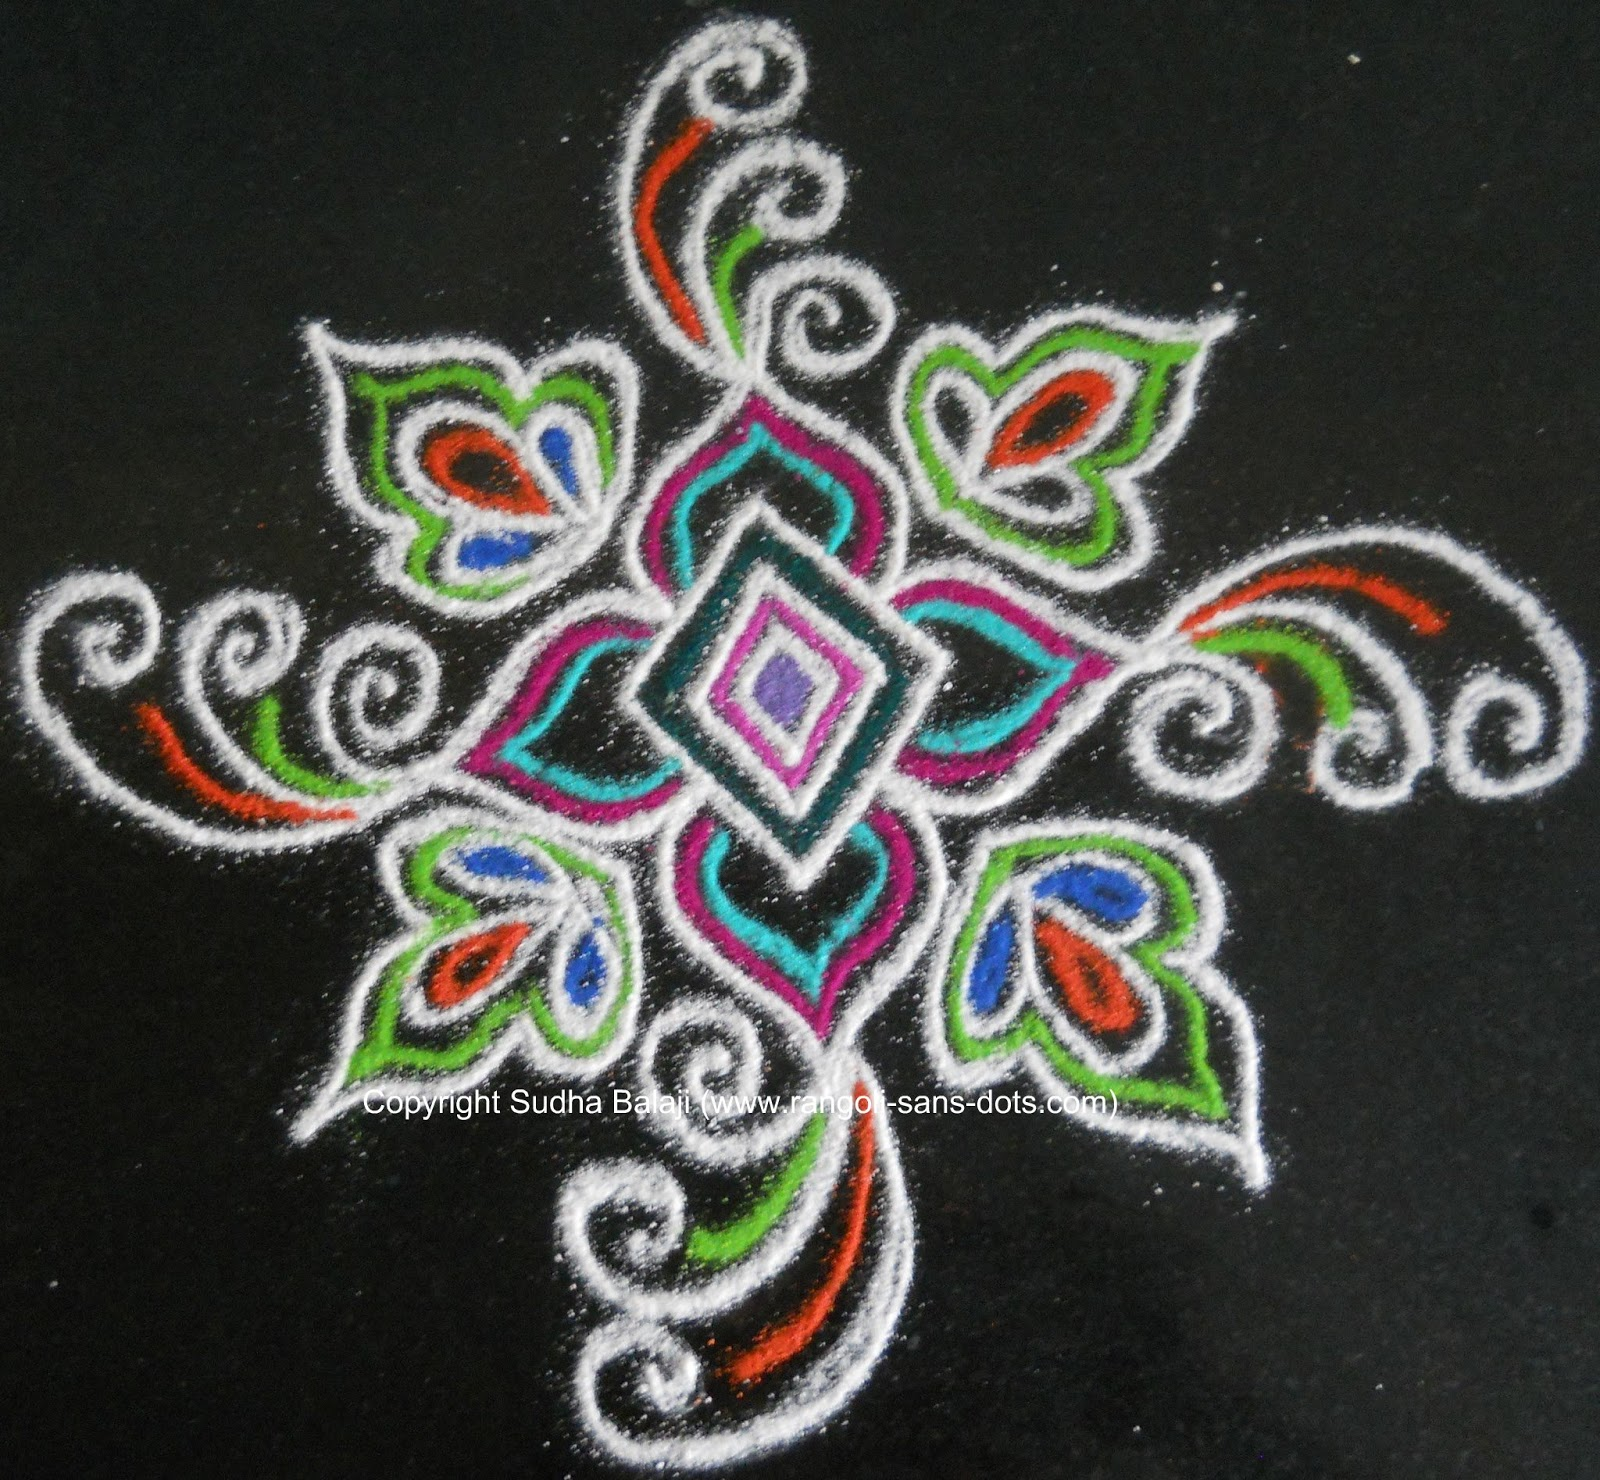 Gallery images and information: Simple Rangoli Kolam Patterns